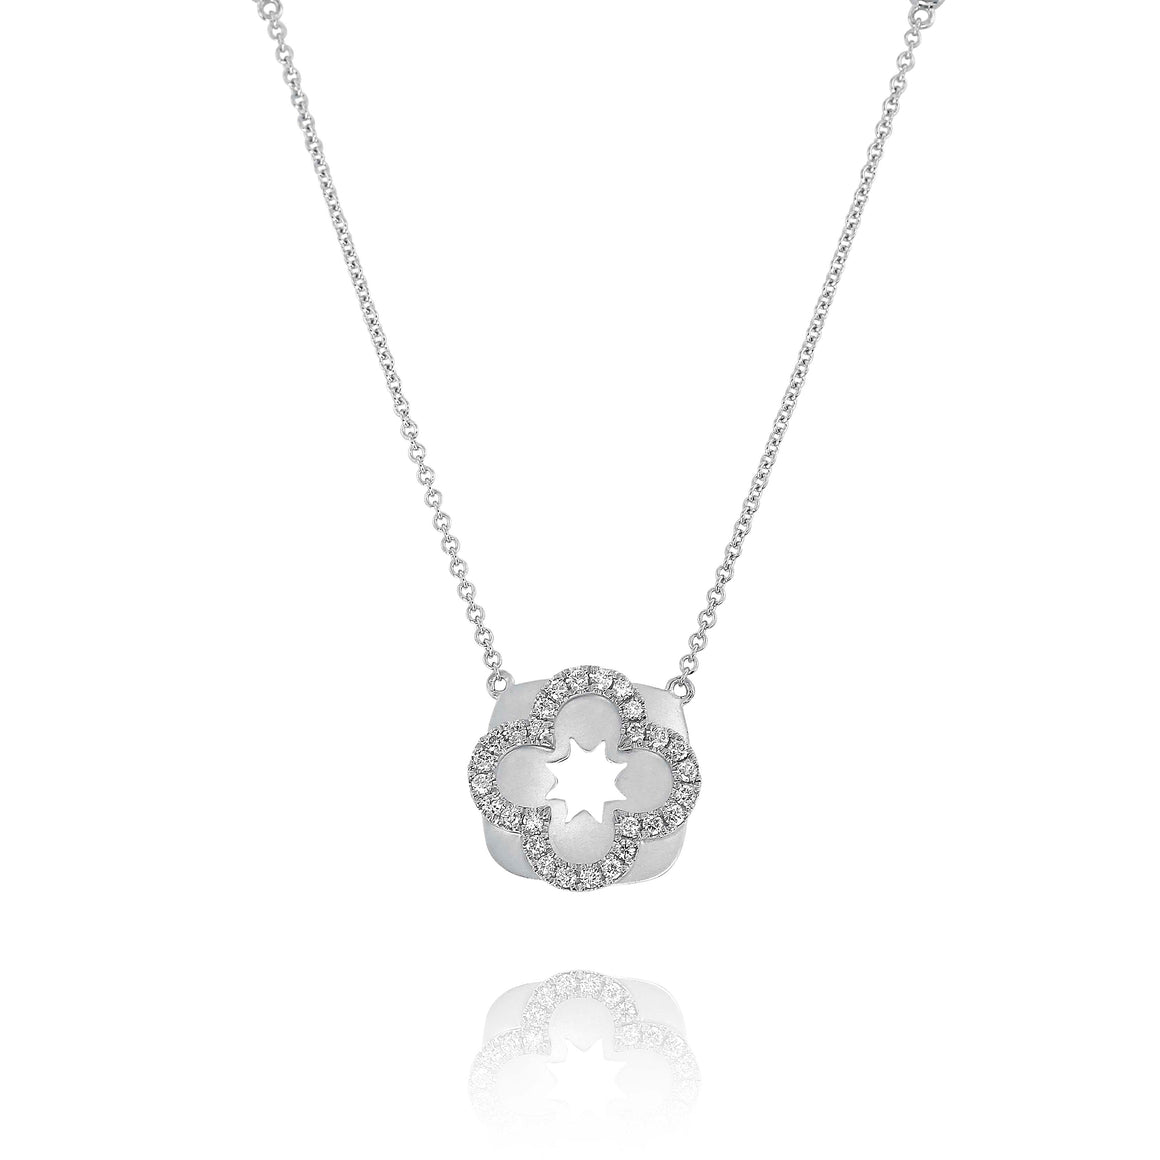 Yael 14k White Gold Diamond Flower Necklace